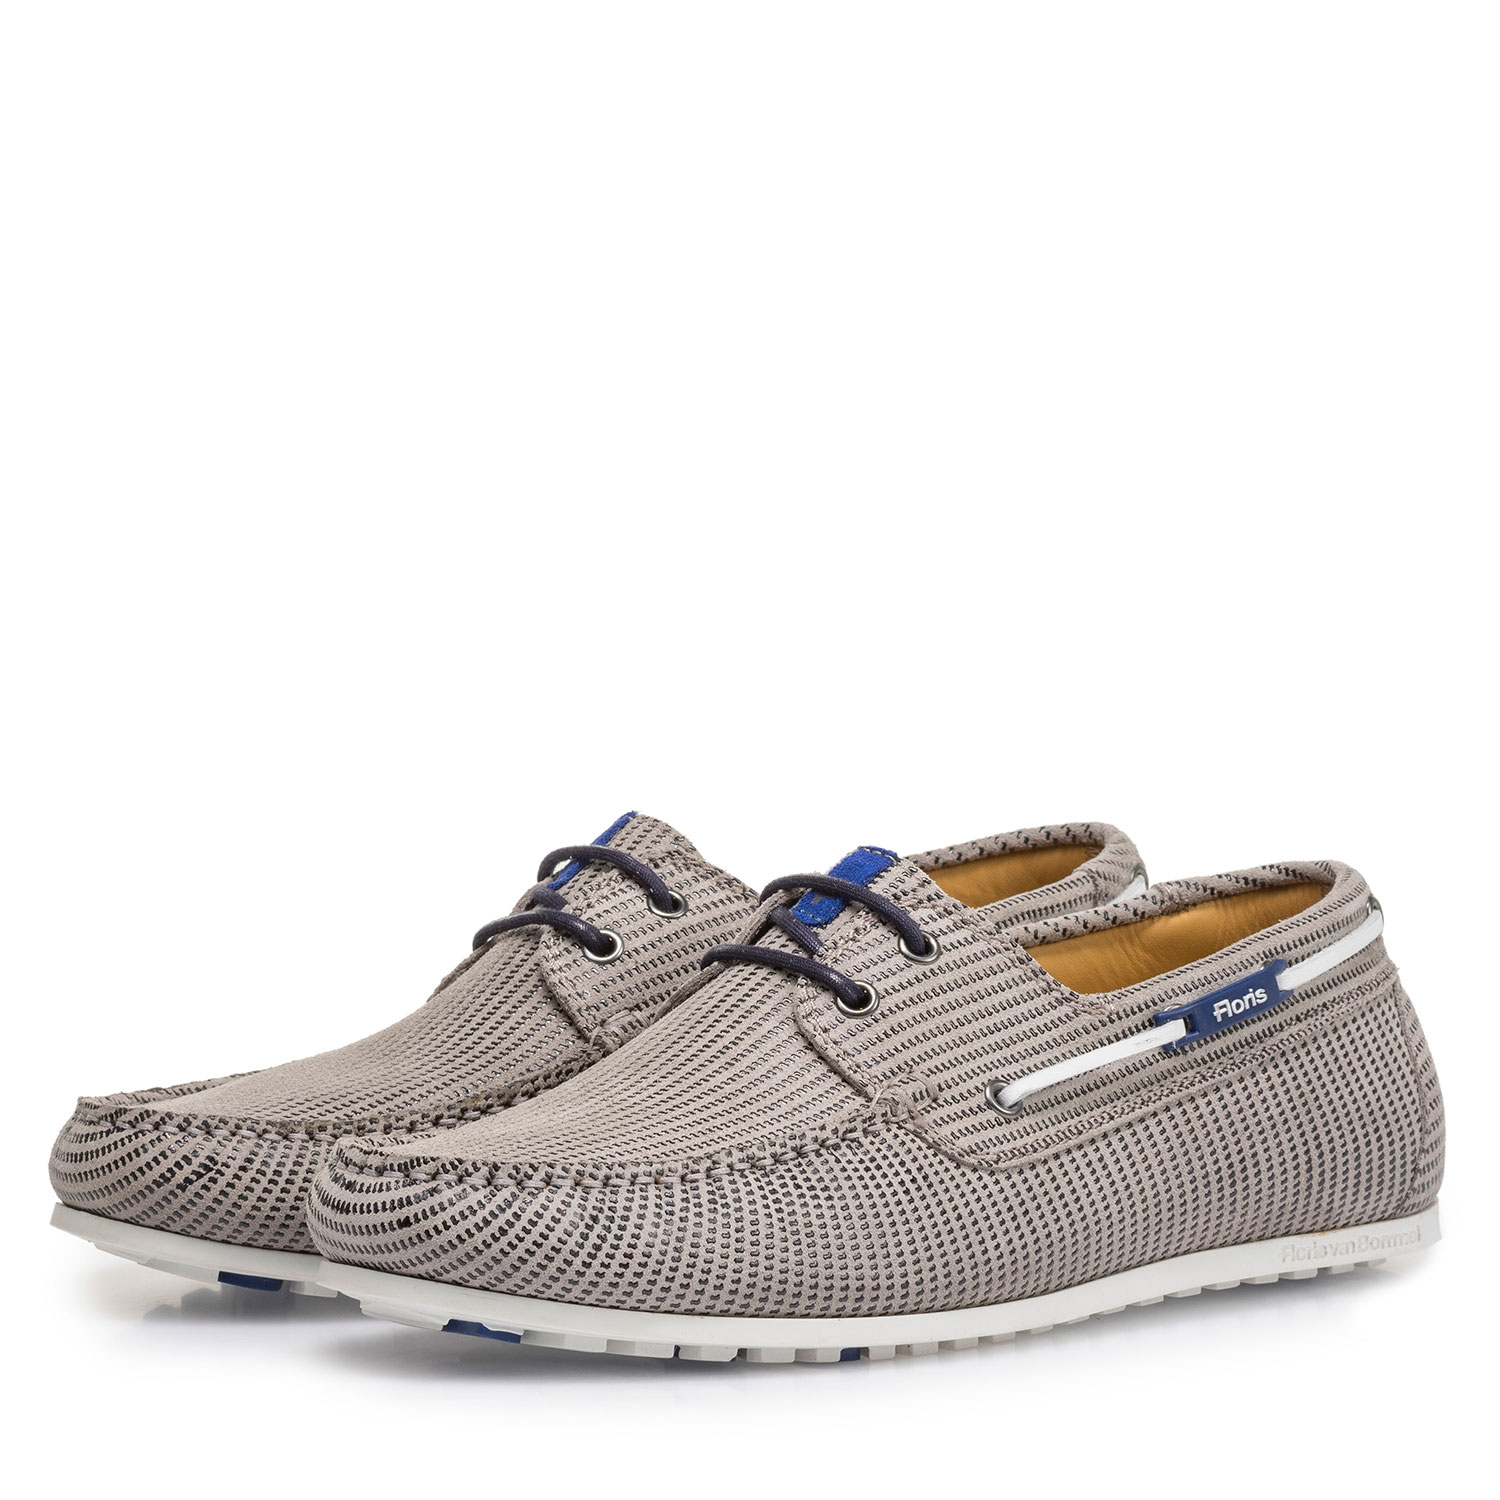 15035/11 - Sand-coloured suede leather boat shoe with print